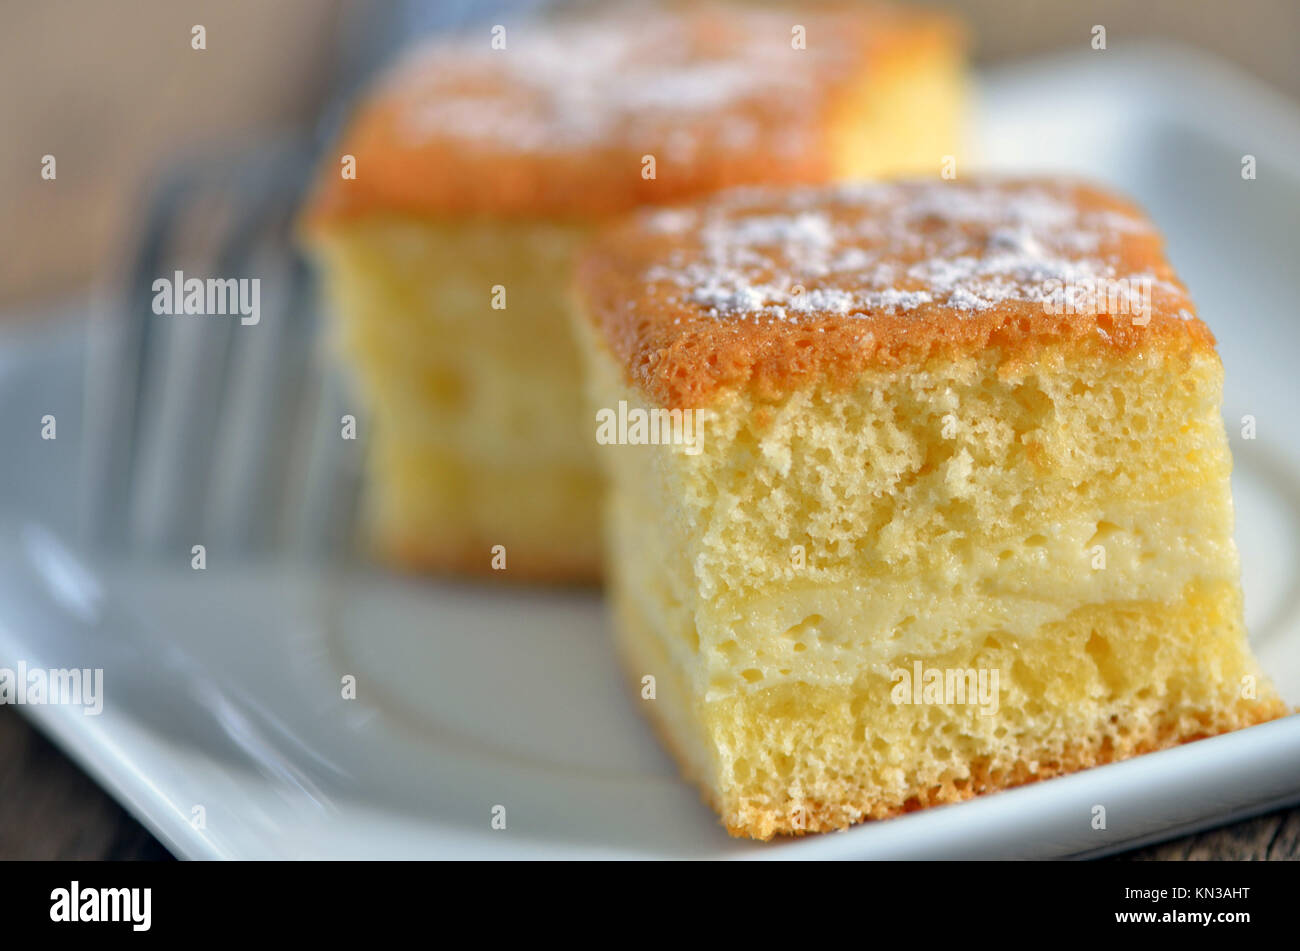 details of cheesecake on plate. Stock Photo